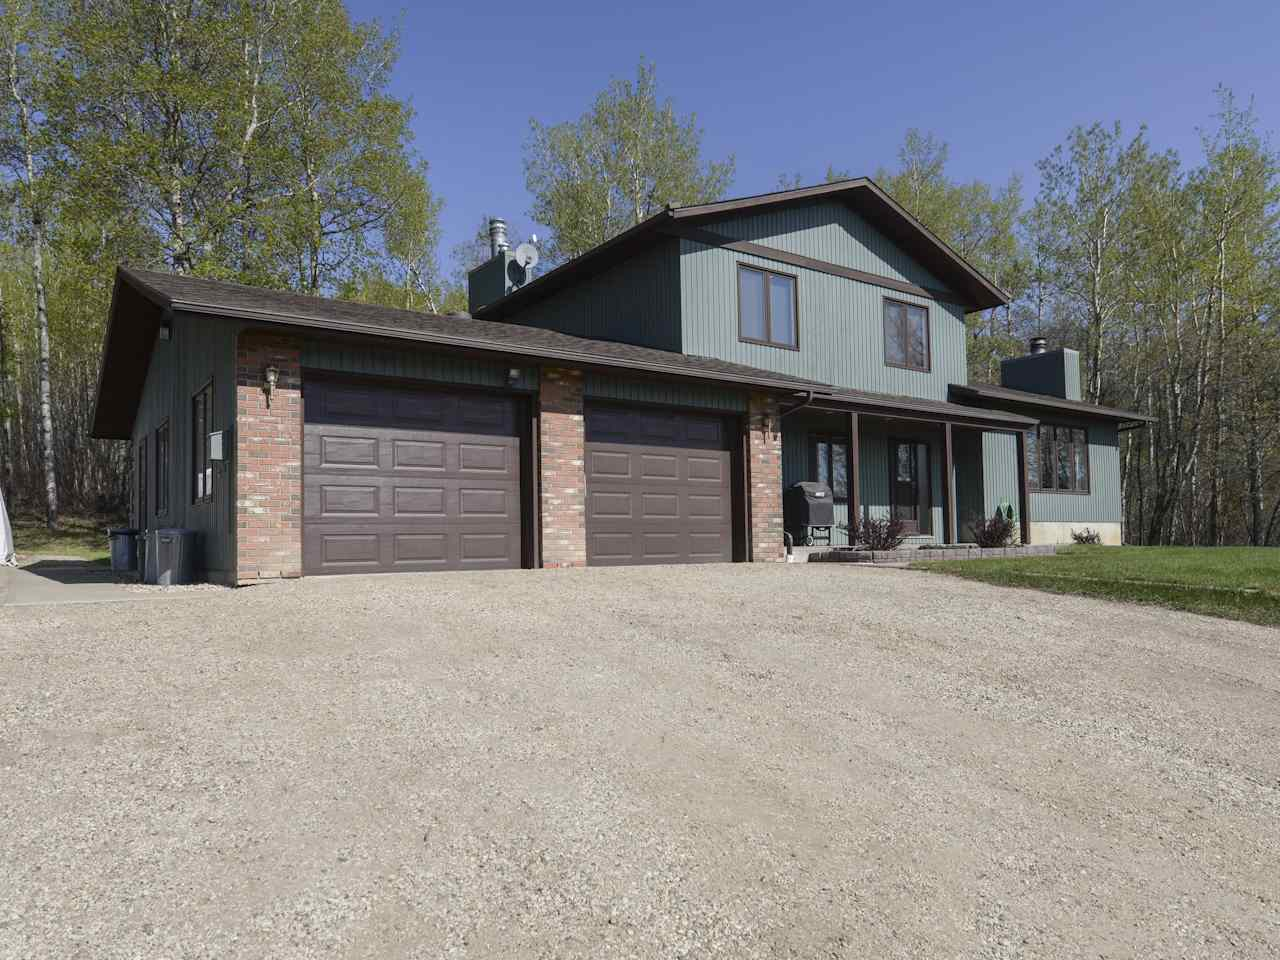 Exceptionally well maintained 5 level split on 2.99 acres minutes north of Spruce Grove on Jennifer Heil Way and Campsite Road.  The view from the property back to Spruce Grove and Edmonton is stunning! 1920 sq ft is at grade. 4 levels are fully developed with the 5th available for development. The main floor features living room, dining room and kitchen. The upper level has 3 bedrooms, full bath and ensuite. The 3rd level has a large family room, office, laundry and entry to oversized 25ftx28ft garage. The 4th level has a recreation room, hobby room and 4th bedroom. Loads of upgrades include: S/S appliances, water heater (2002), furnace (2010), 35 yr shingles (2012), septic field (2013) and iron filter (2006). A Great Family Home minutes to Spruce Grove services!